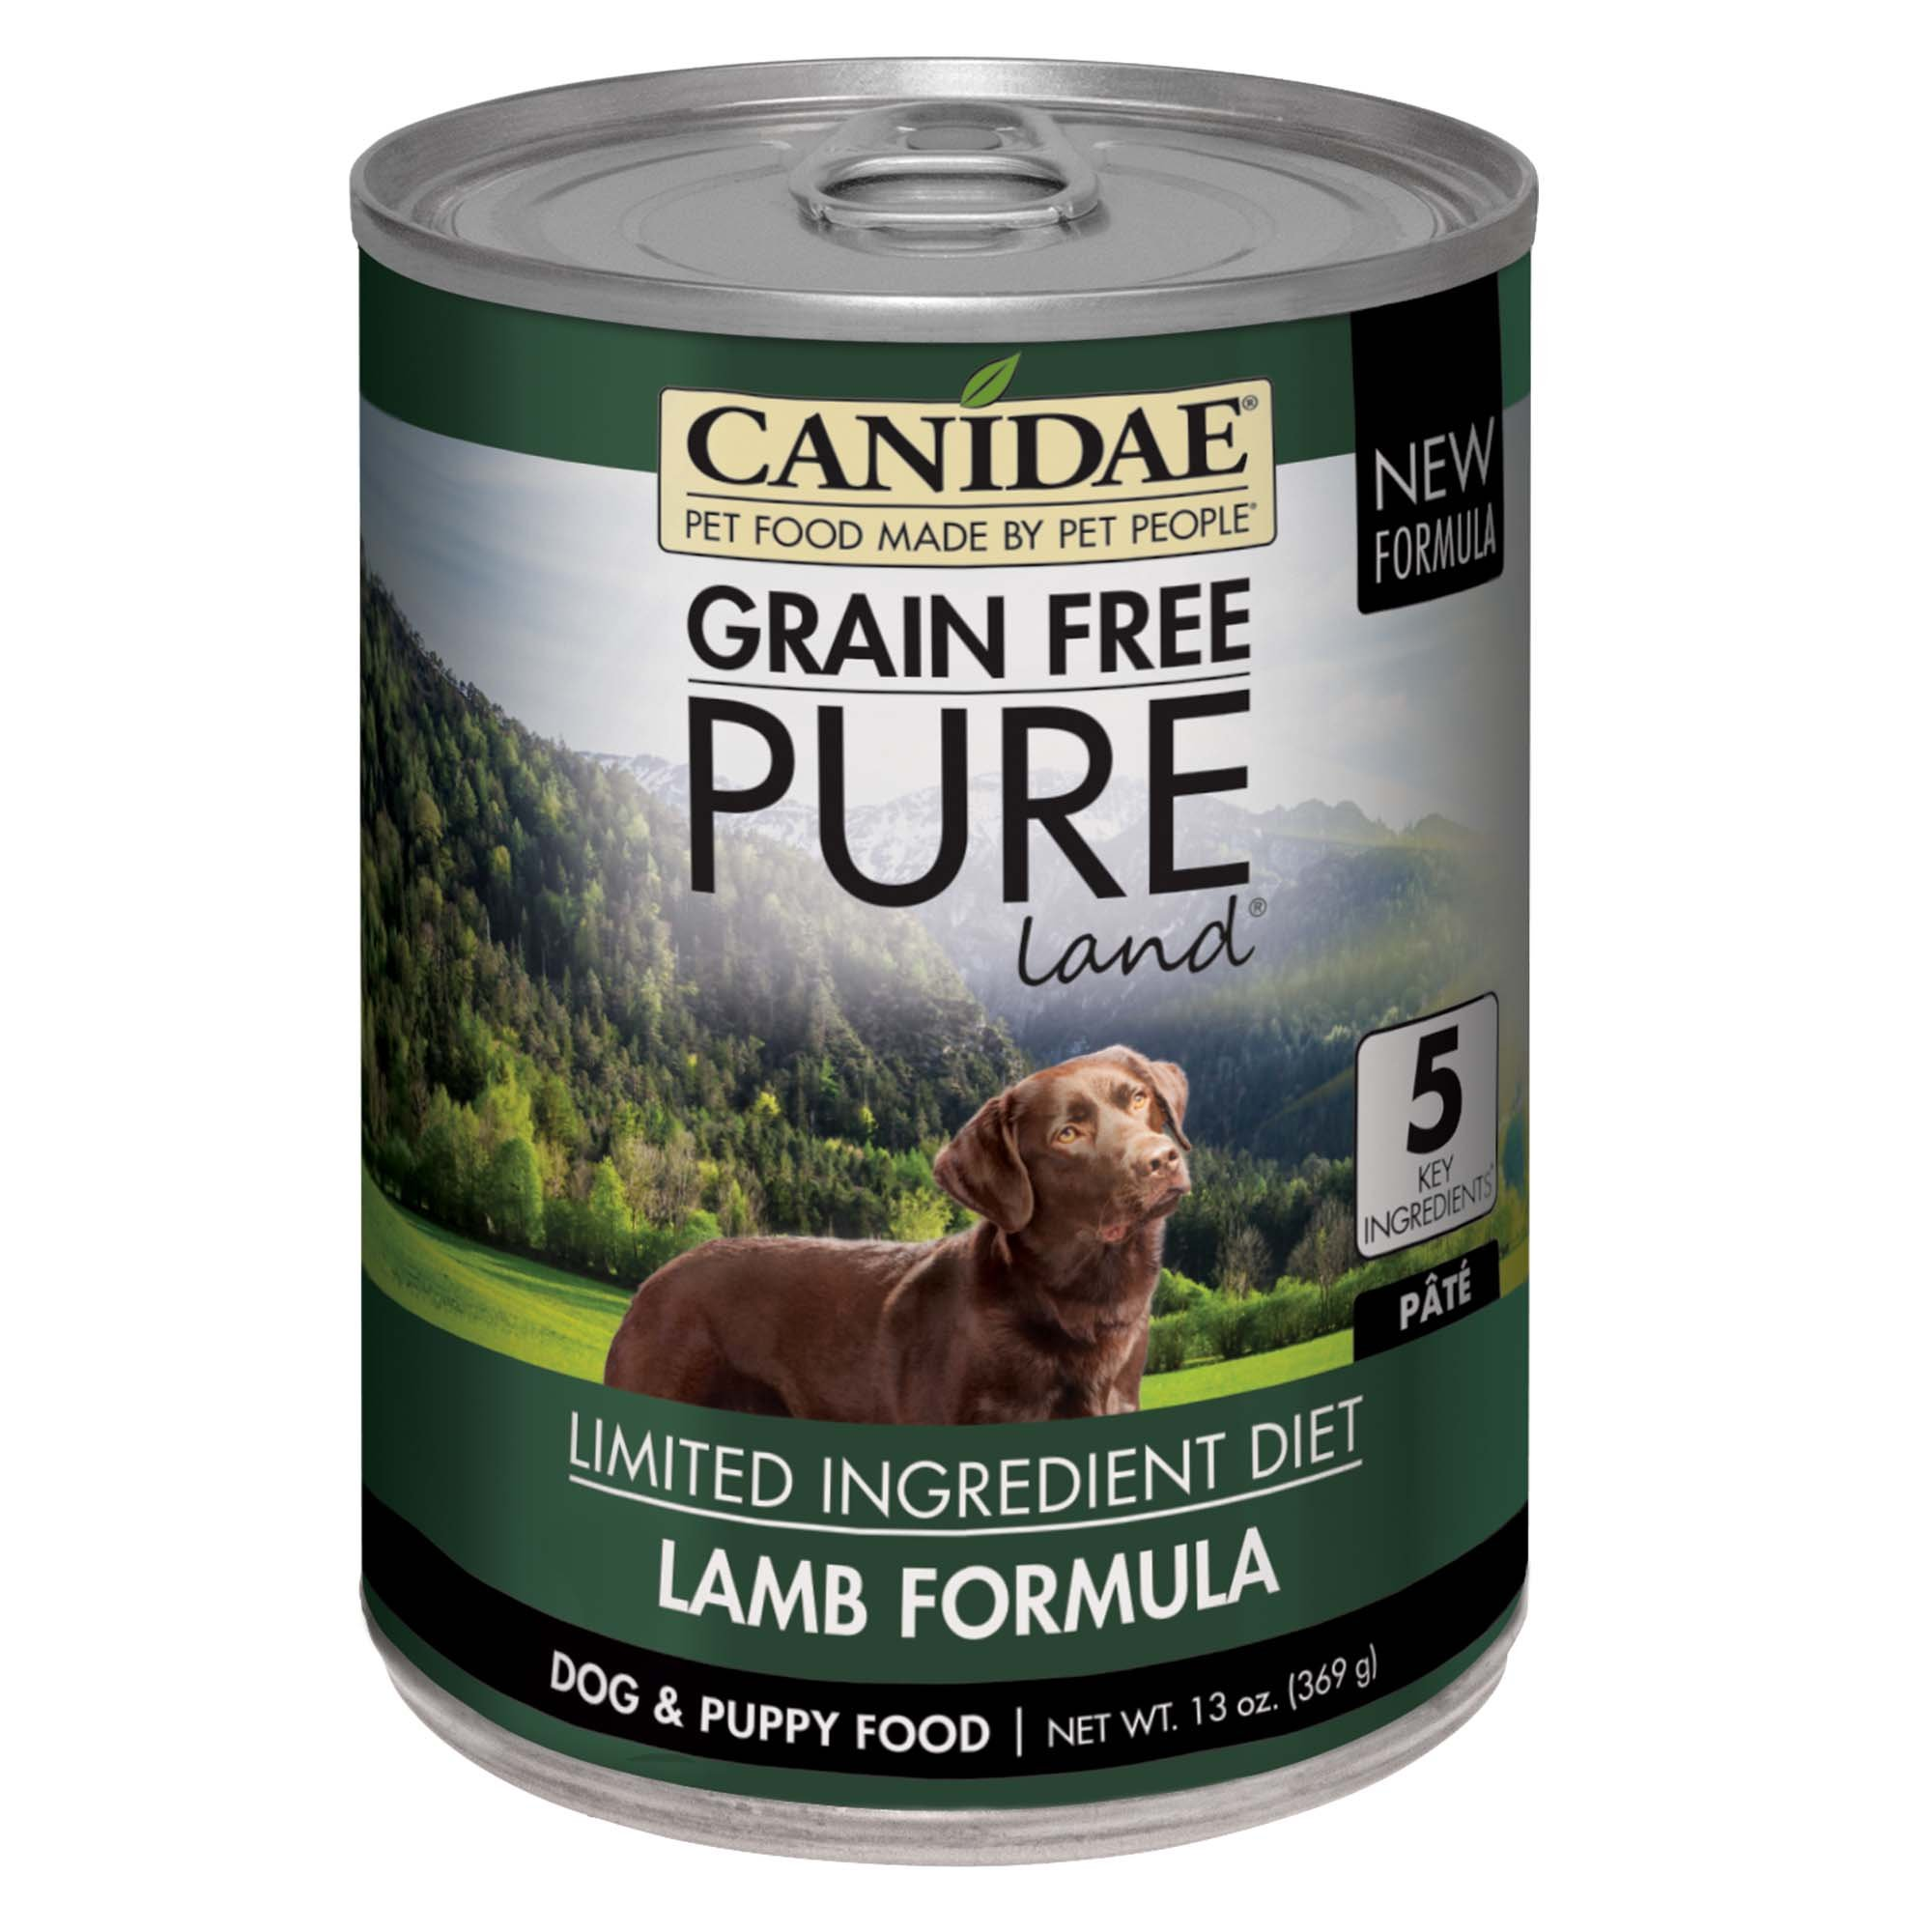 CANIDAE Grain Free PURE Land Dog Wet Formula with Lamb, 13 oz (12-pack) by CANIDAE